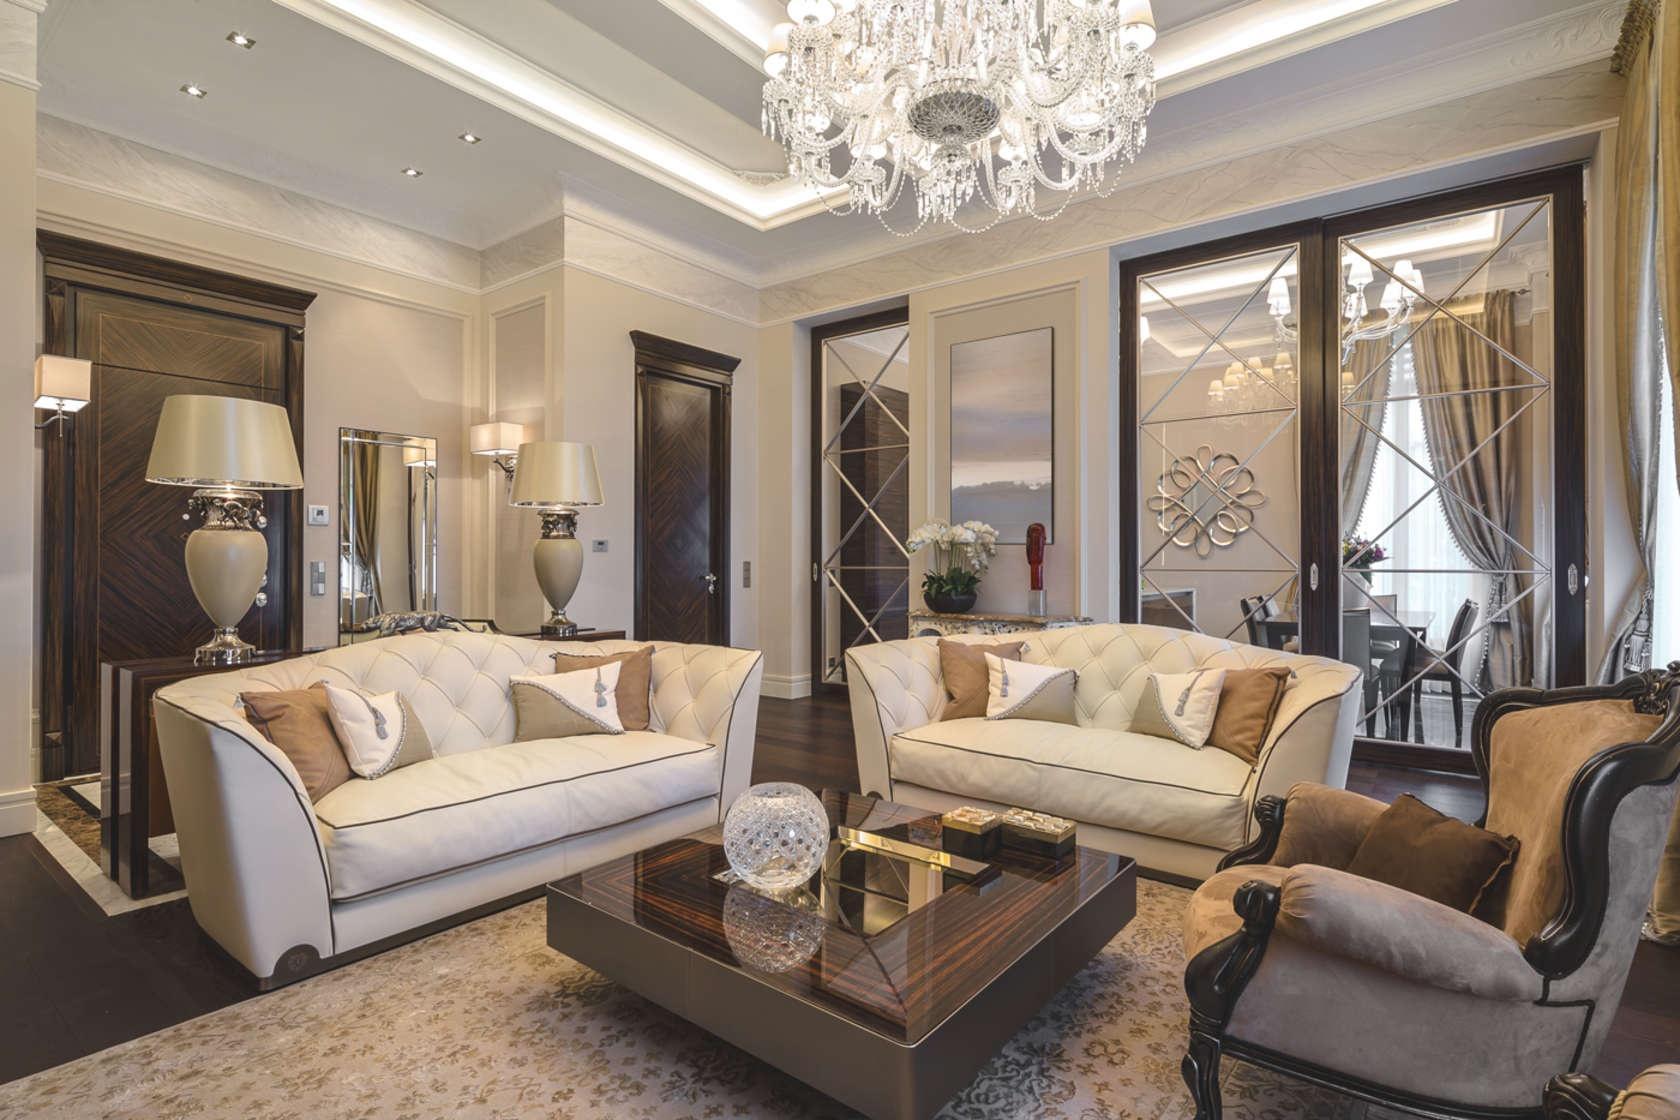 Traditional Interior Design Ideas: Lightweight Classics. Nicely decorated chatting zone with two white sofas